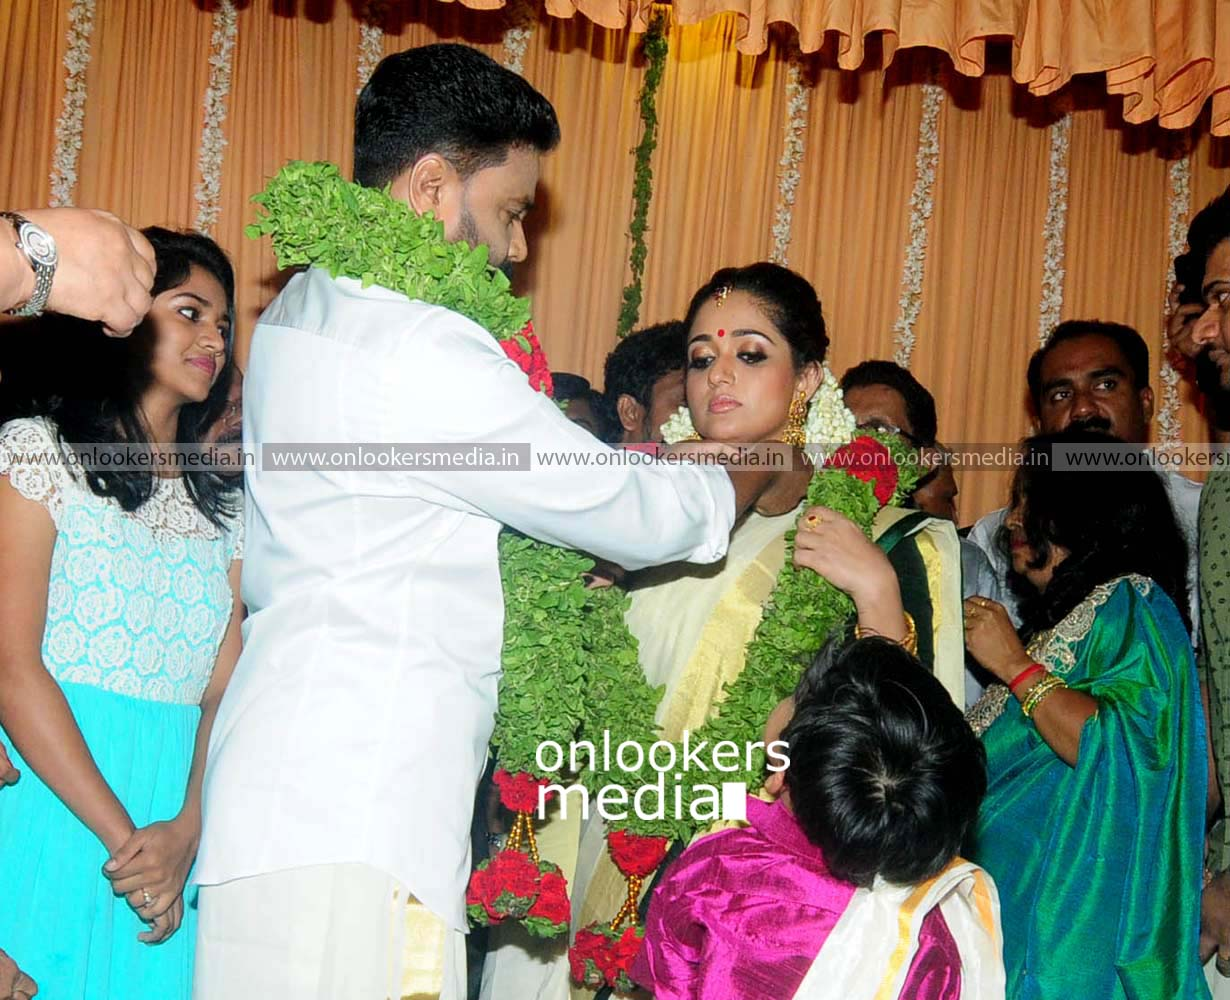 http://onlookersmedia.in/wp-content/uploads/2016/11/Dileep-Kavya-Madhavan-Wedding-Stills-Photos-19.jpg